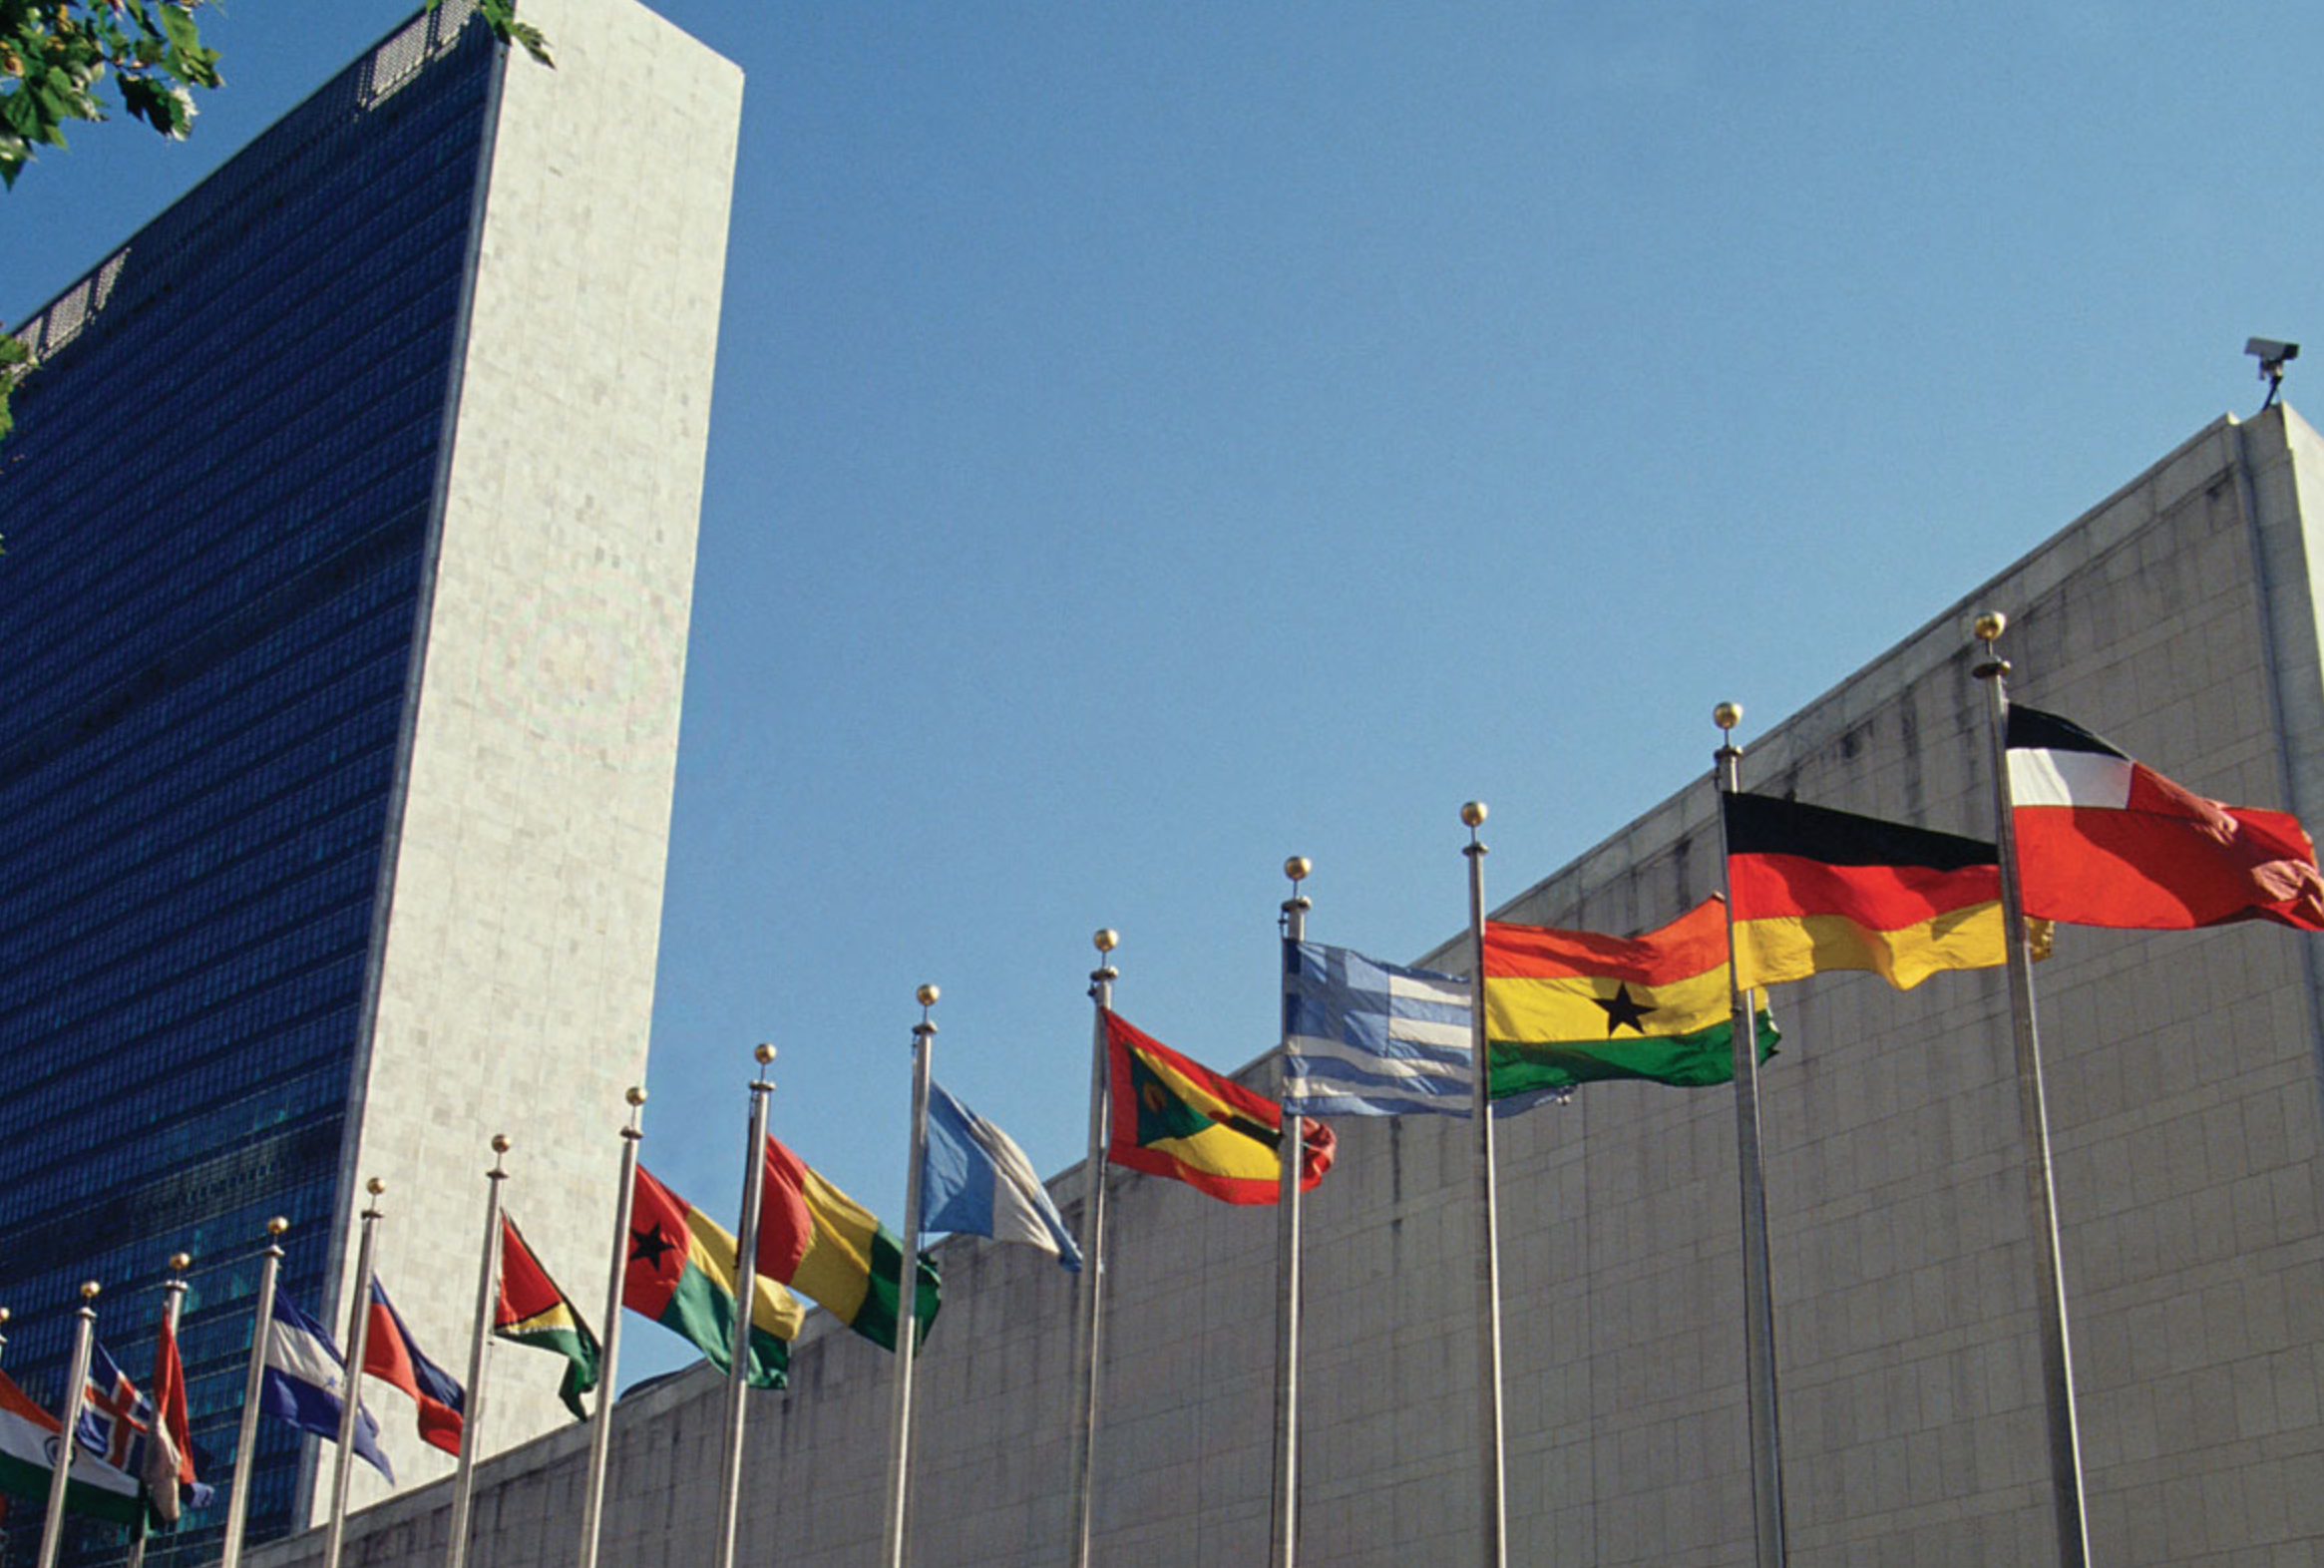 UN member nations flags fly in NYC - Kids Britannica